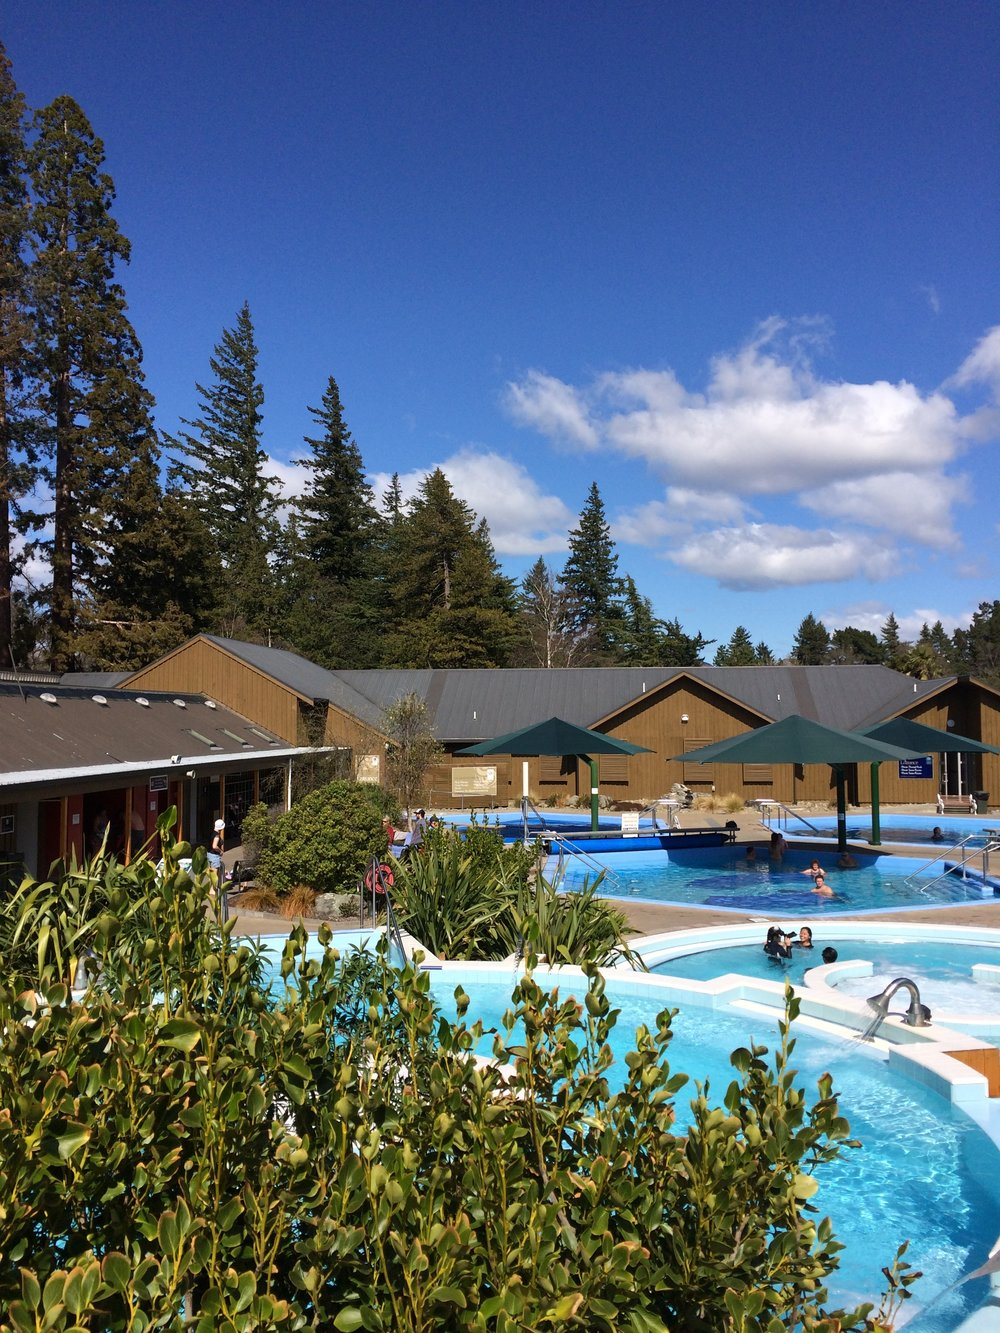 The Hot Pools in Hamner Springs